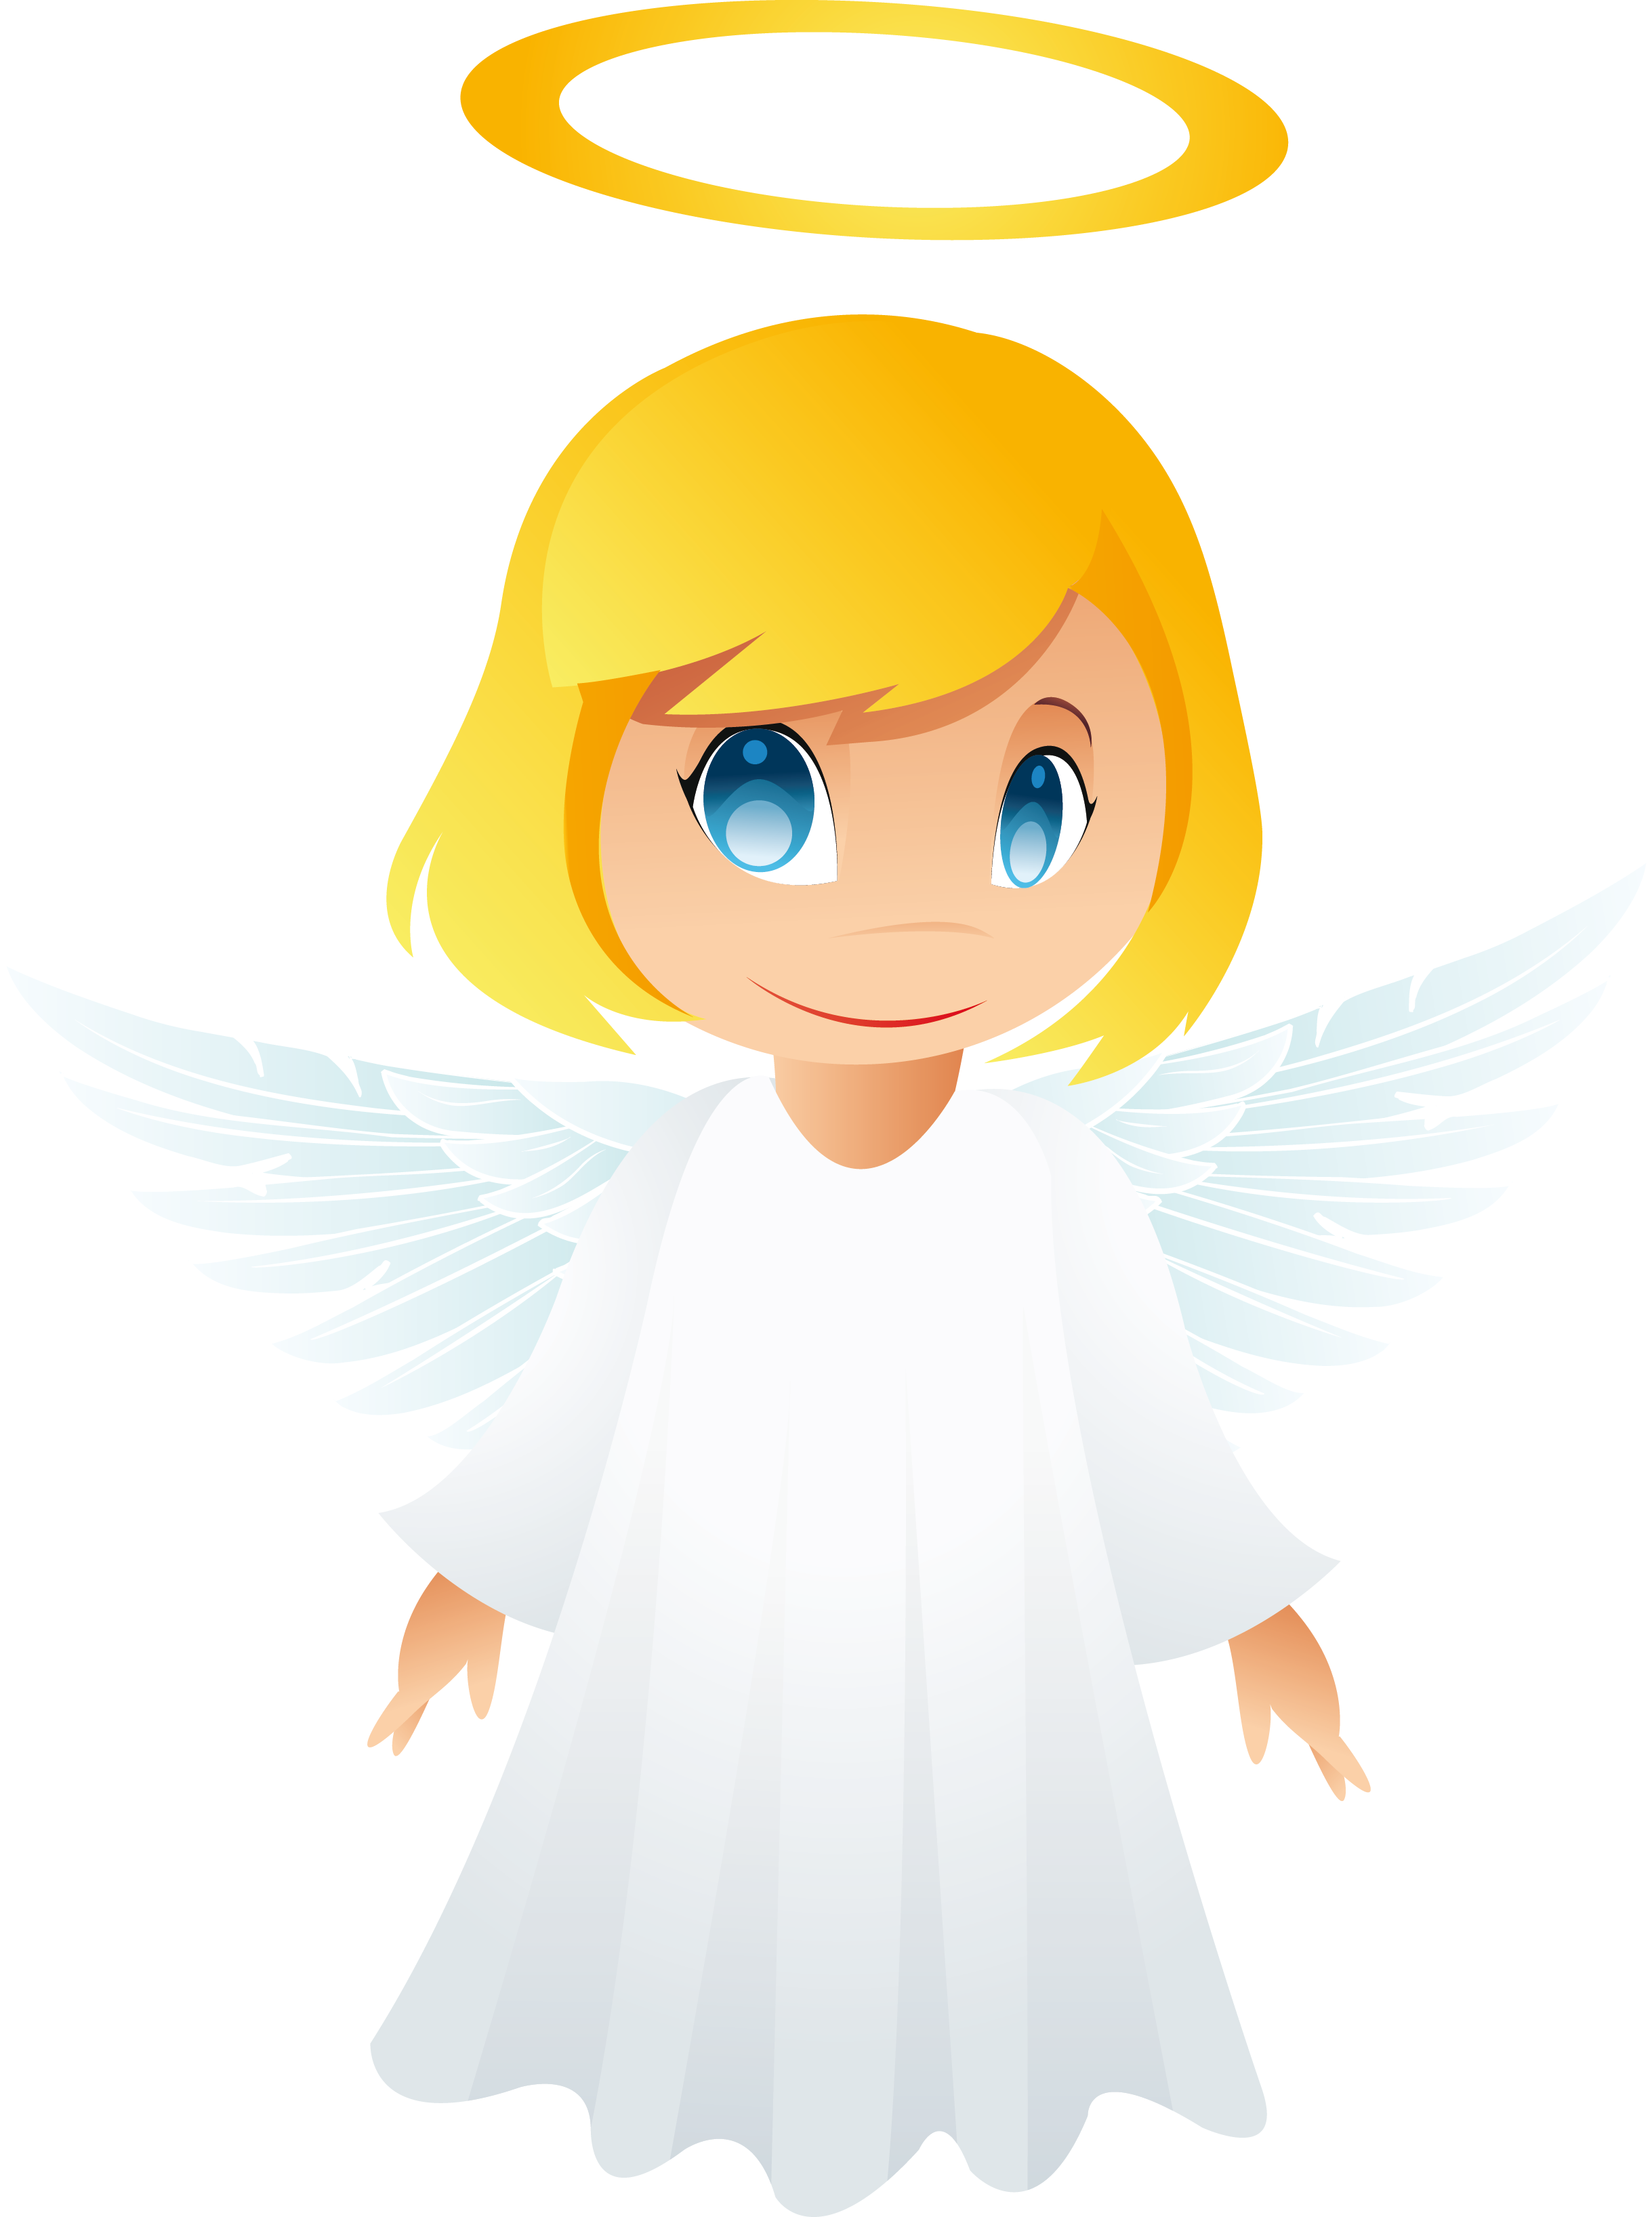 Download Angel Clipart Free Graphics Of Cherubs And Angels The Angel Clipart 5 Full Size Png Image Pngkit